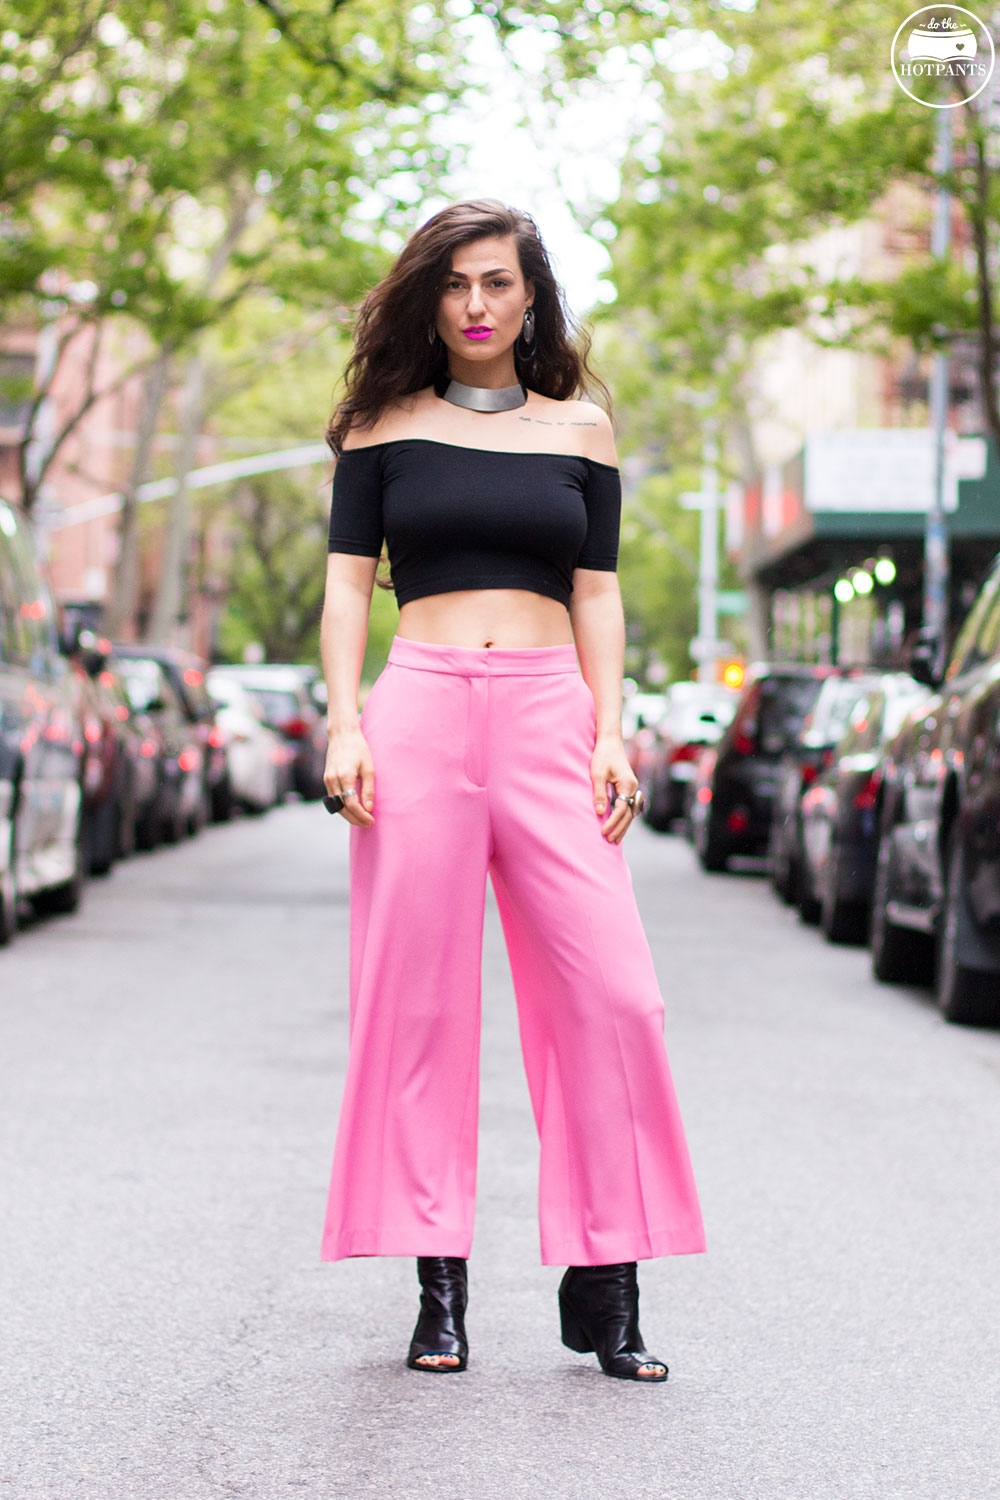 Do The Hotpants Dana Suchow Pink Pants Neon Lipstick Wide Leg Capri Culottes Pant Black Crop Top IMG_8755